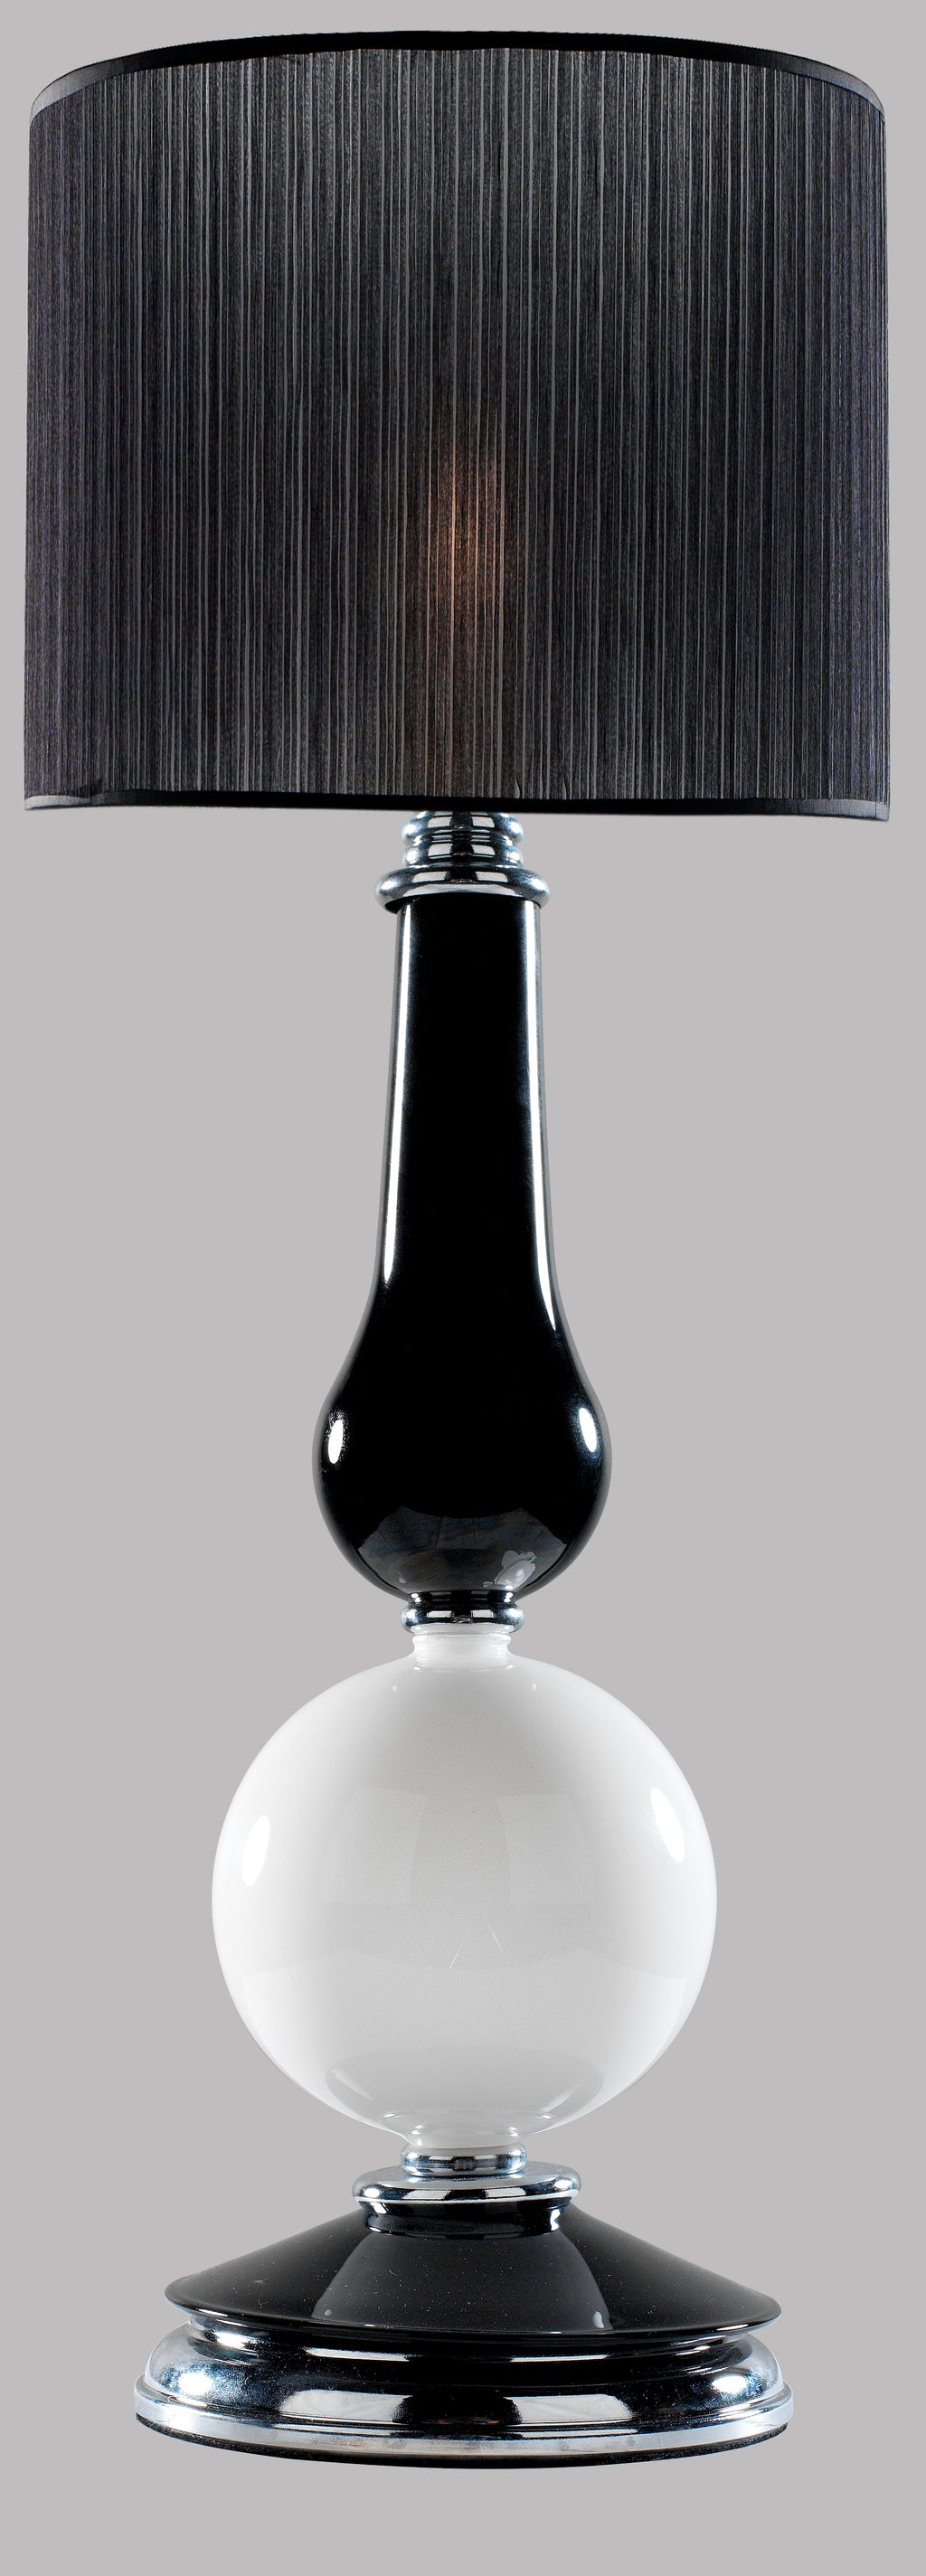 Farringdon Table Lamp - David Malik & Son